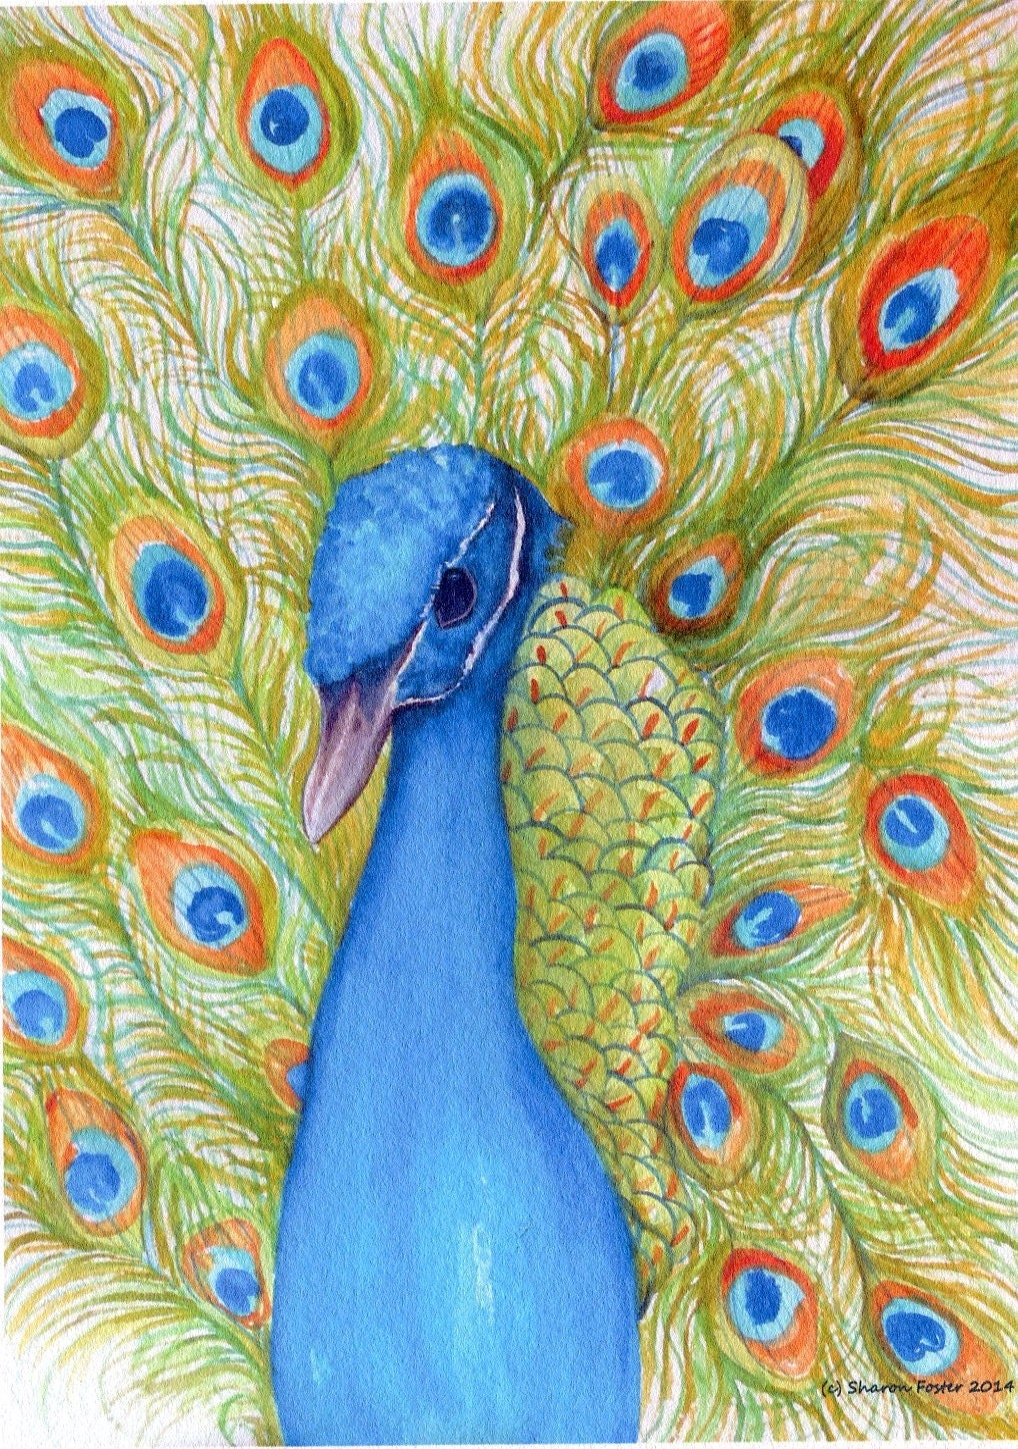 Peacock Print from my original painting watercolor Bird